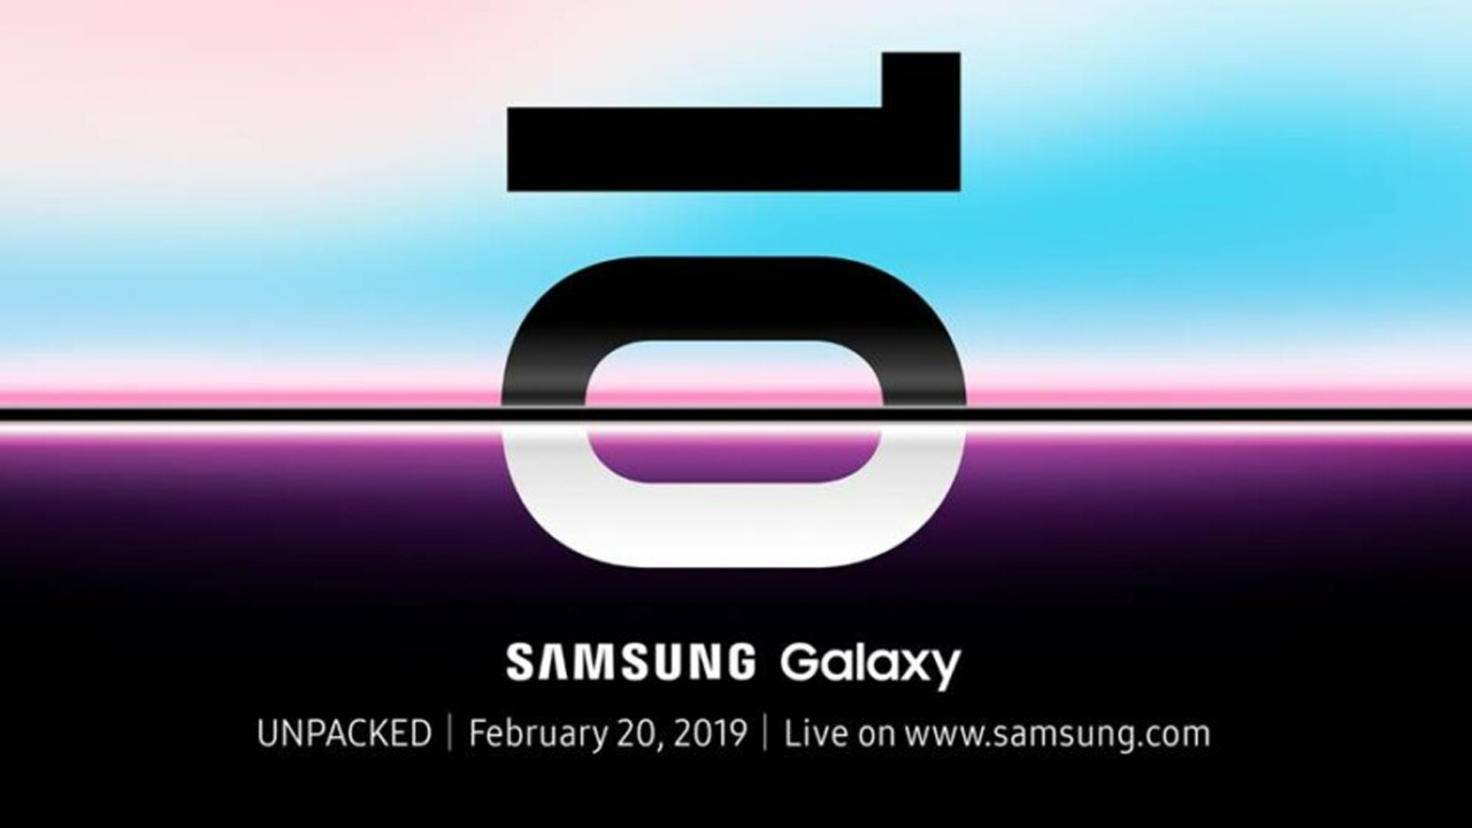 Galaxy S10 Unpacked